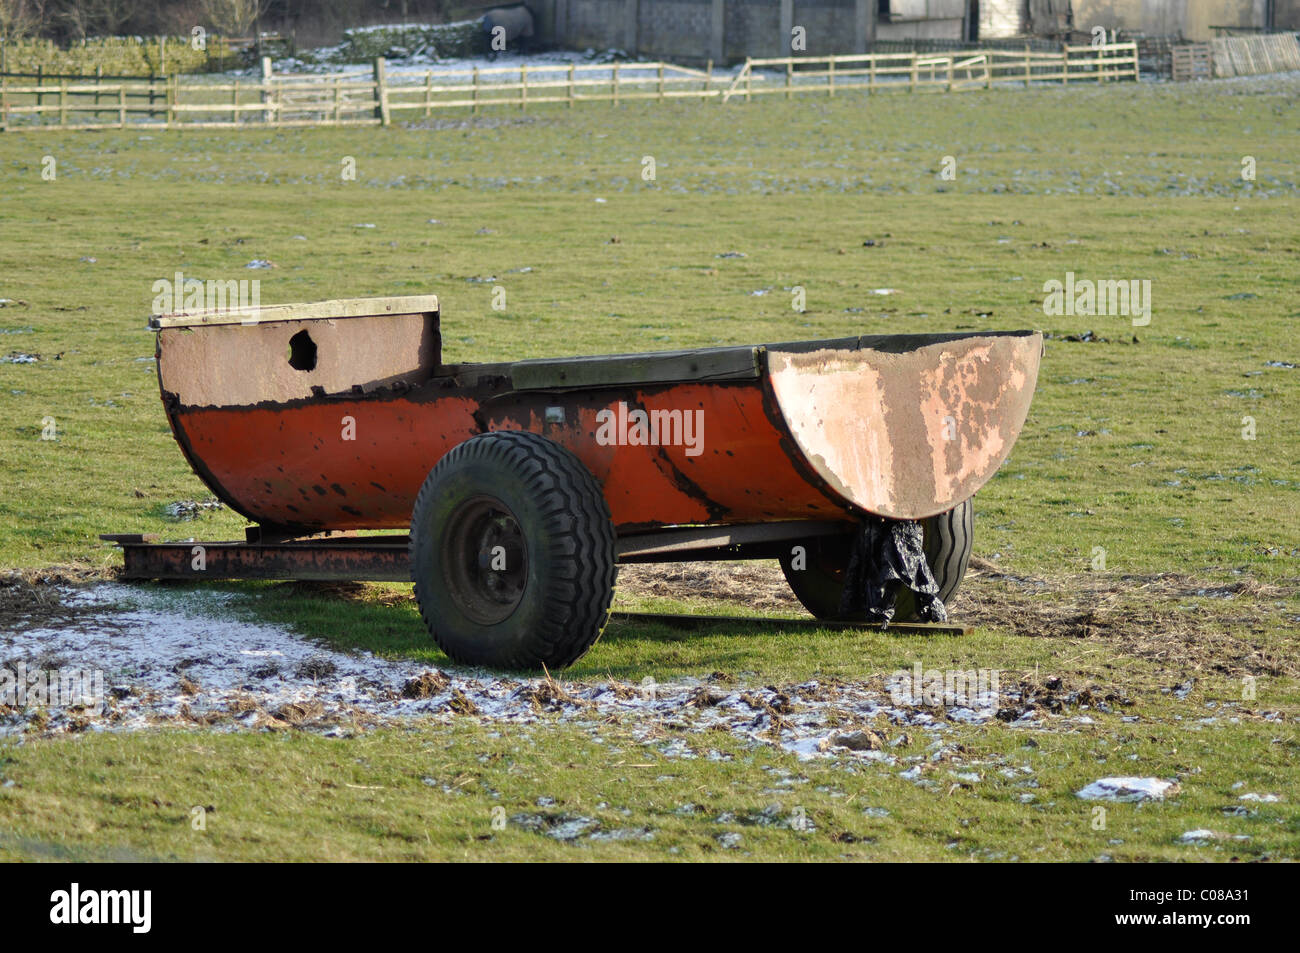 Farm tractor muck spreader trough, shot during winter on a British farm - Stock Image